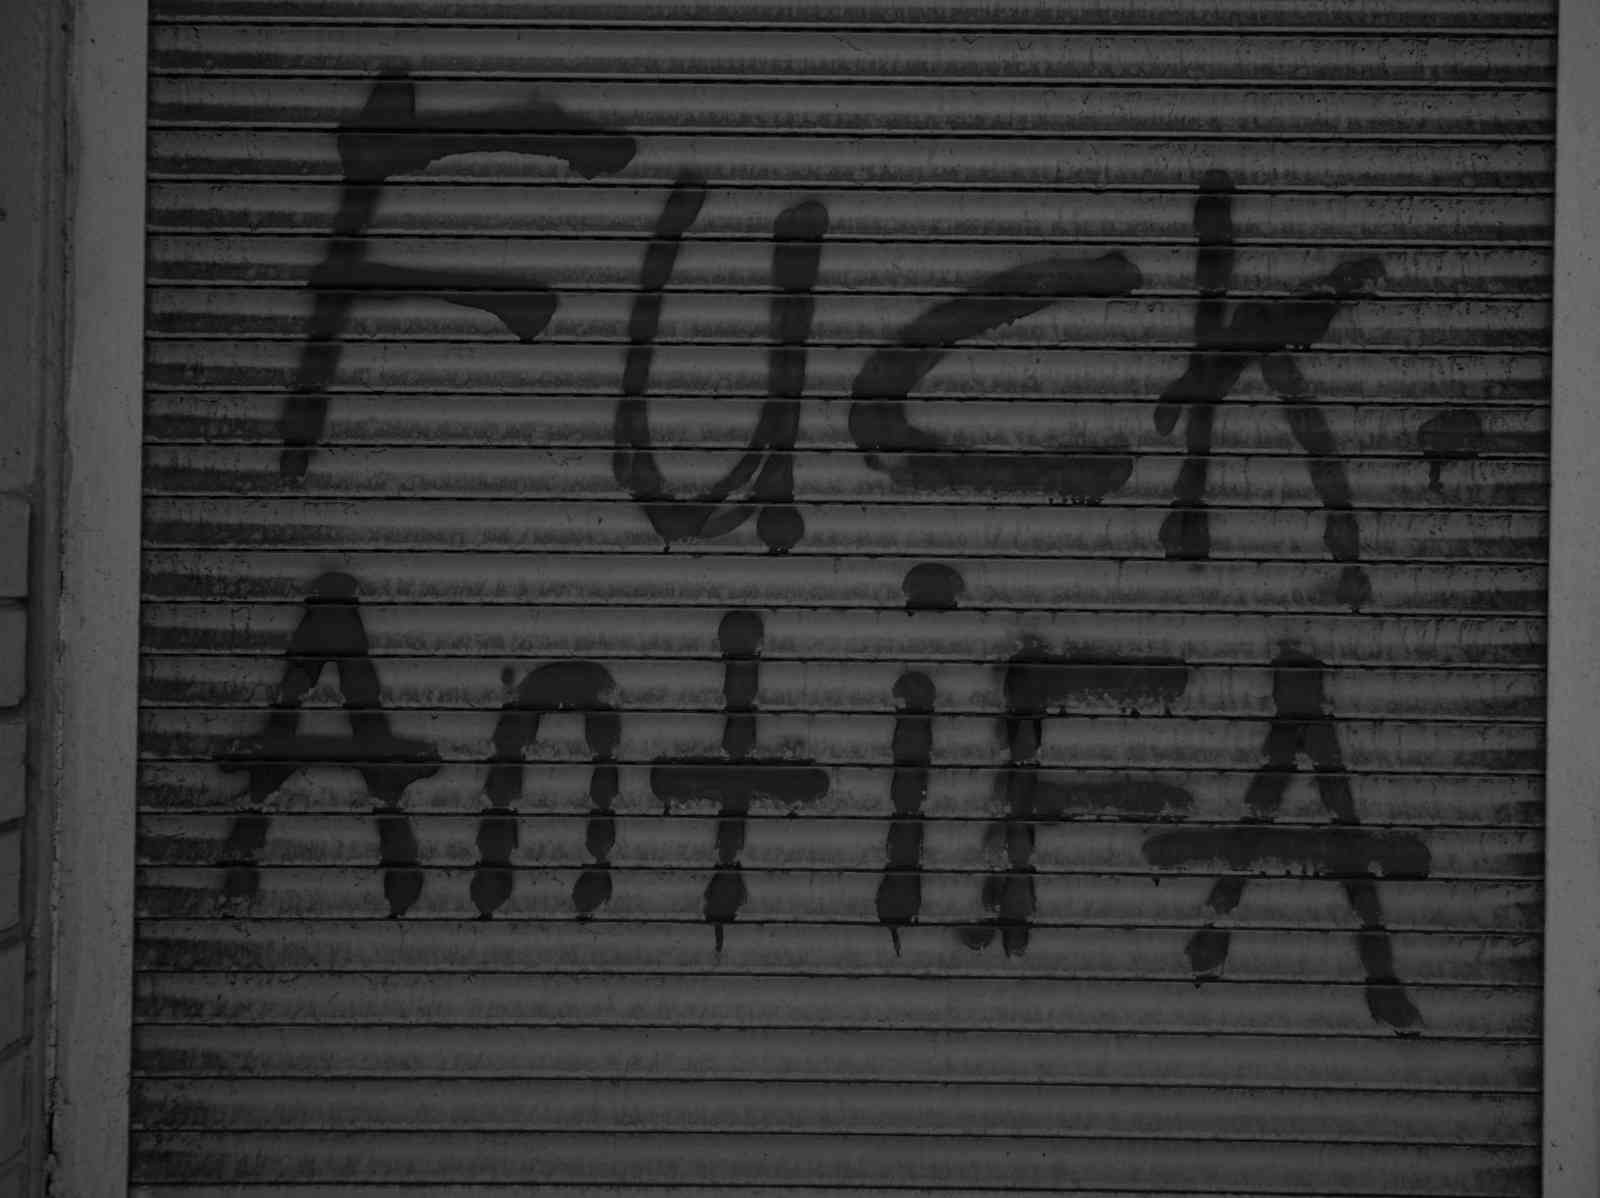 Lost Place am Zoo - Fuck Antifa